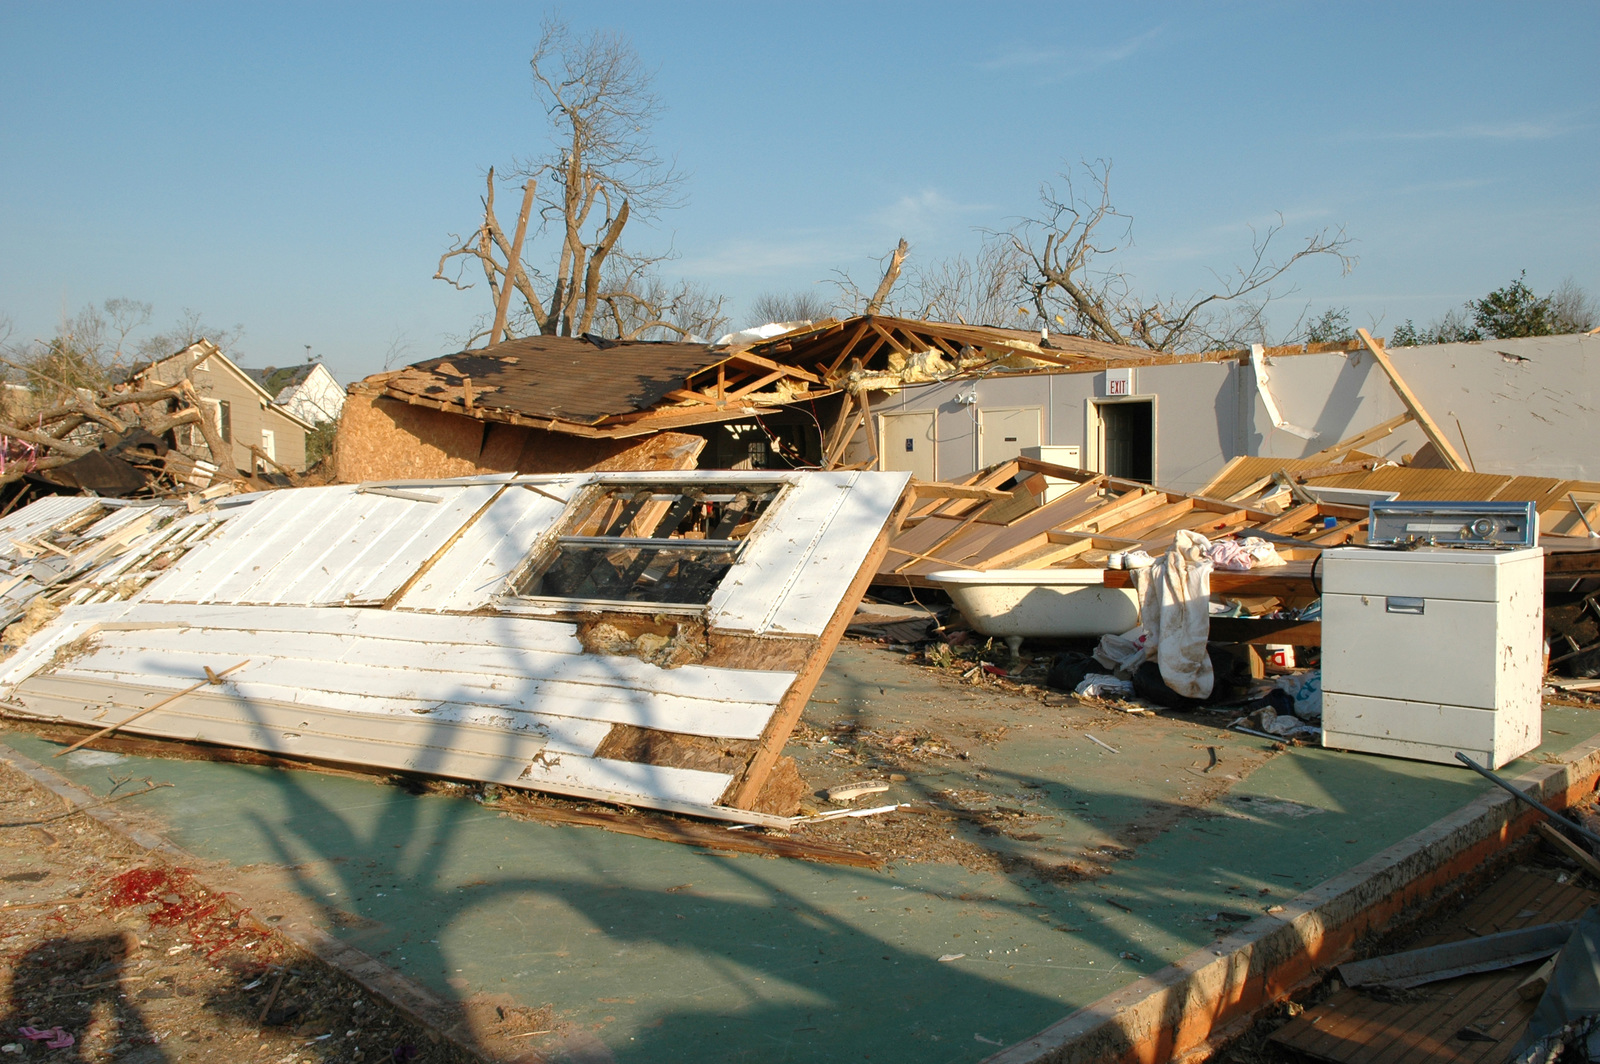 [Severe Storms and Tornadoes] Americus, GA, March 8, 2007 -- A business destroyed by the Georgia tornadoes.  The tornadoes caused extensive damage in Georgia.  Mark Wolfe/FEMA